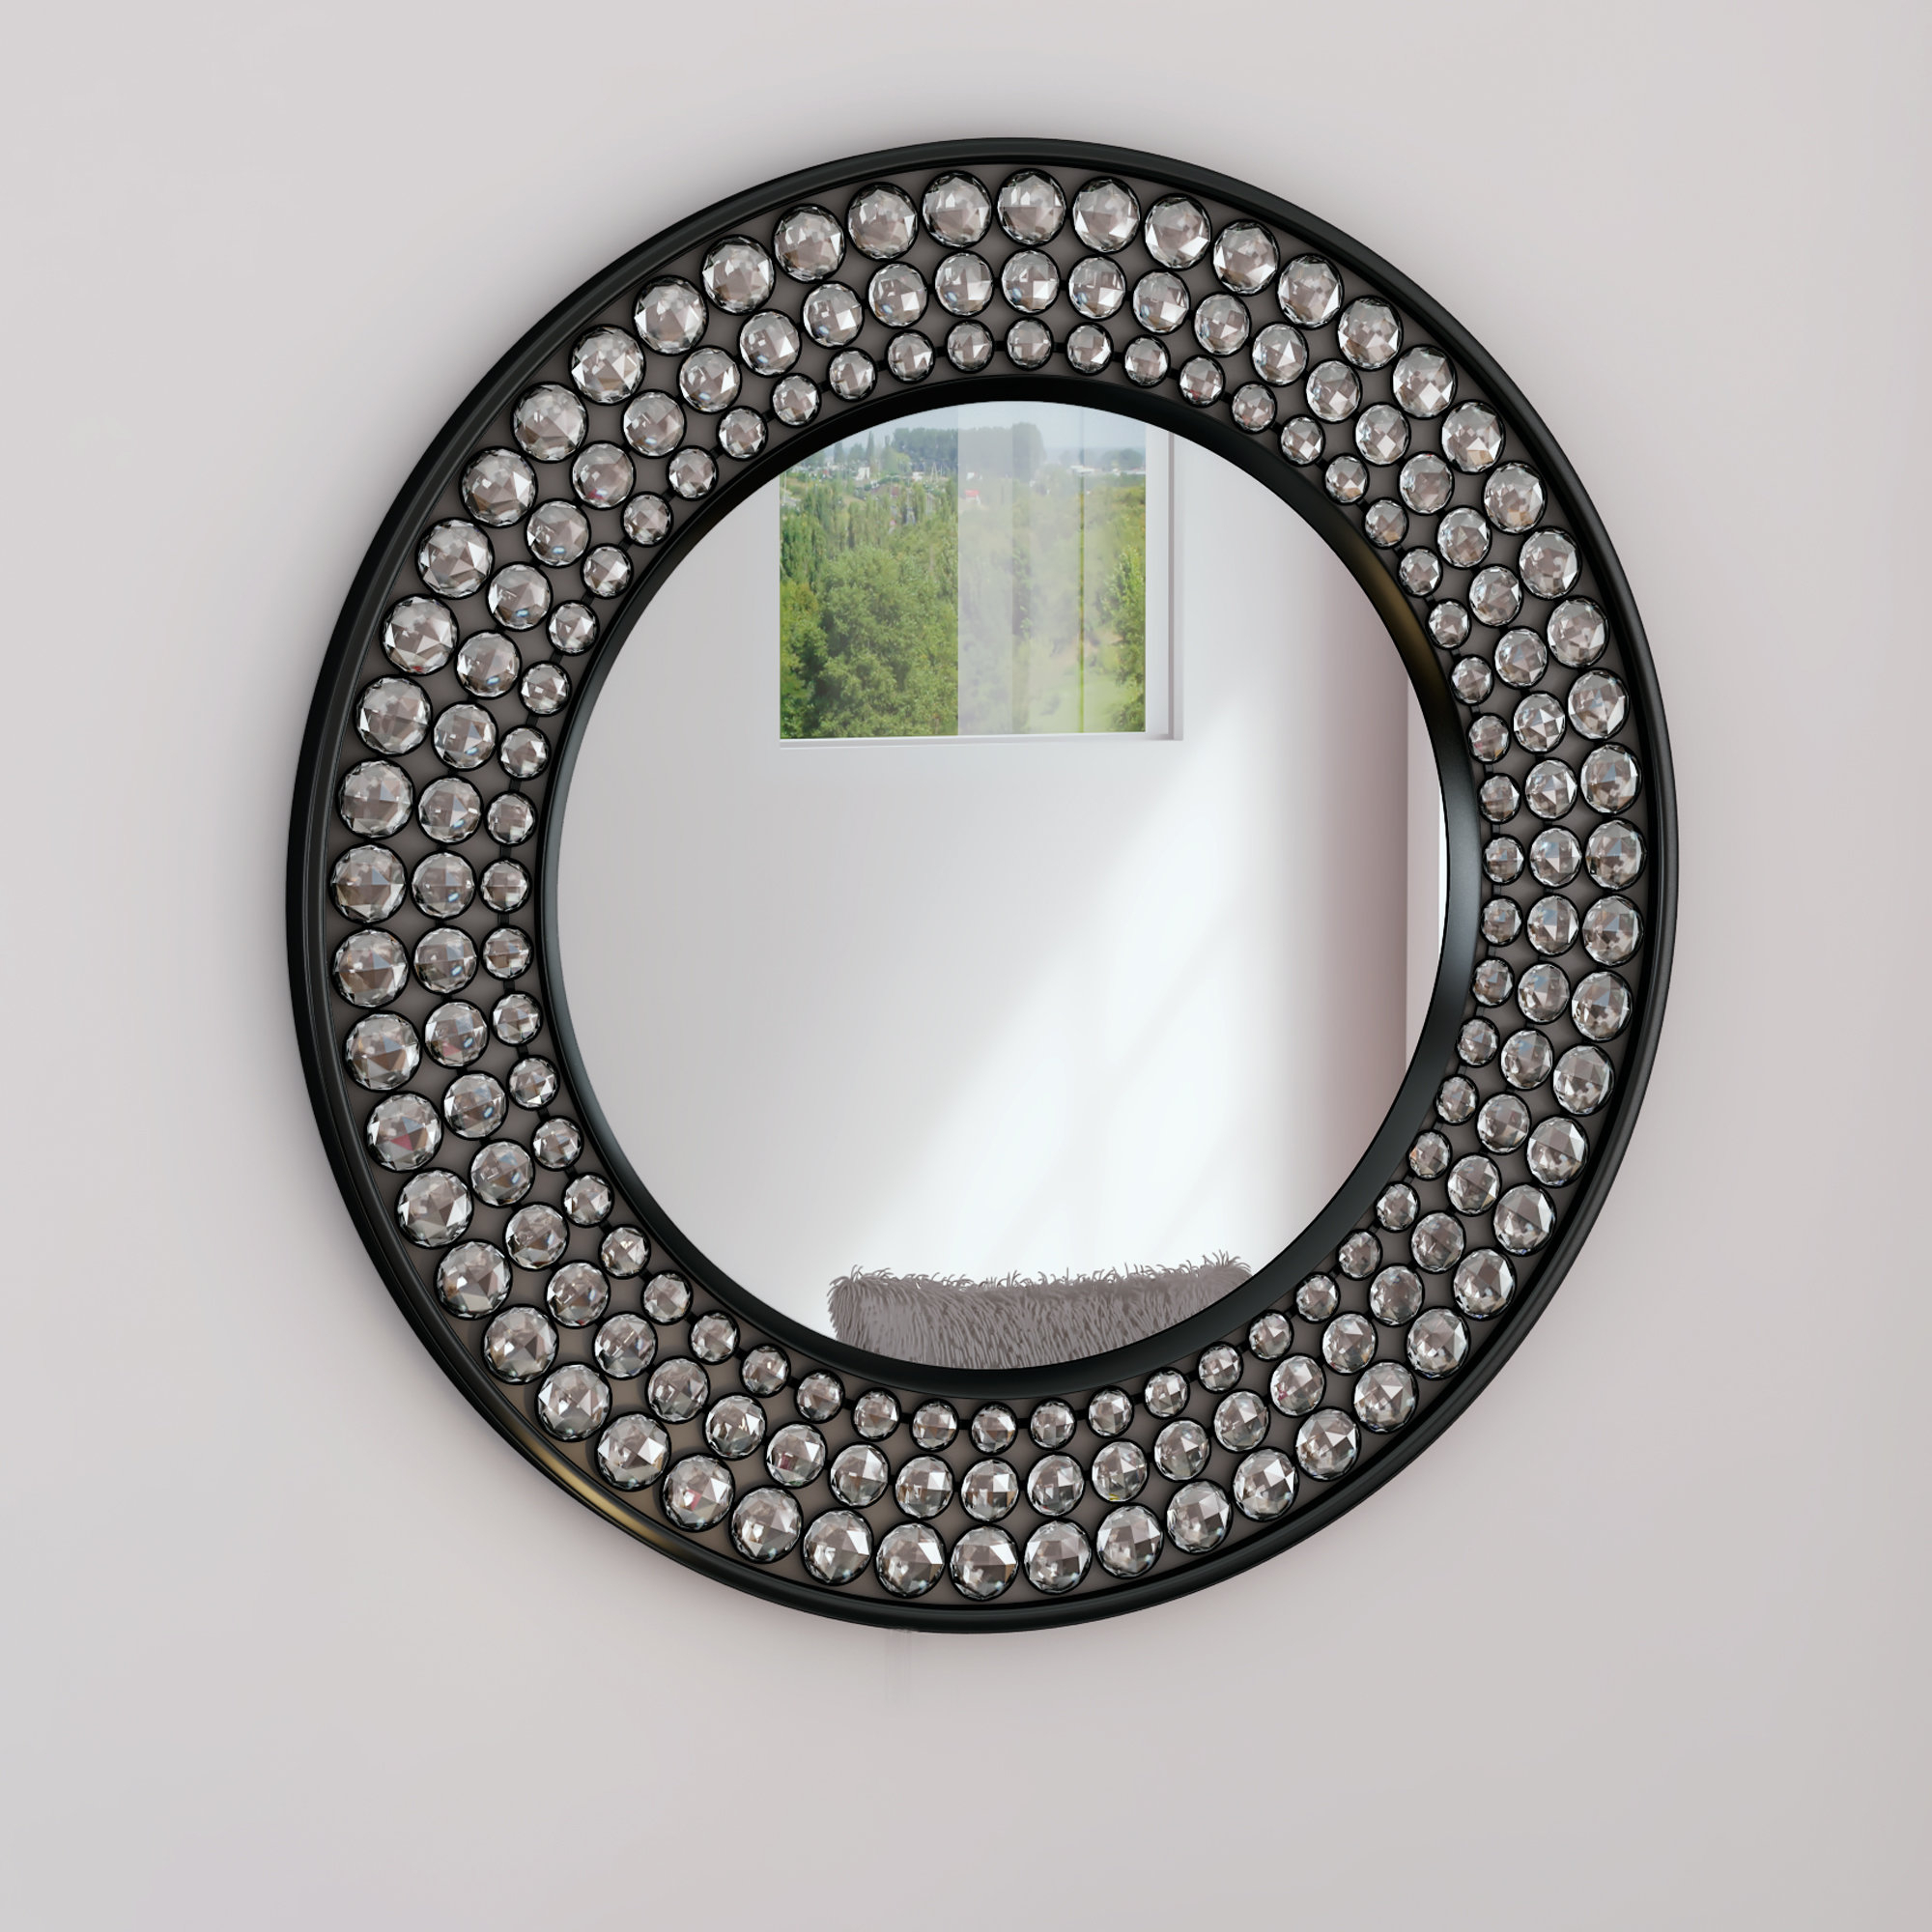 Valerian Jeweled Round Wall Mirror In Karn Vertical Round Resin Wall Mirrors (Photo 6 of 20)